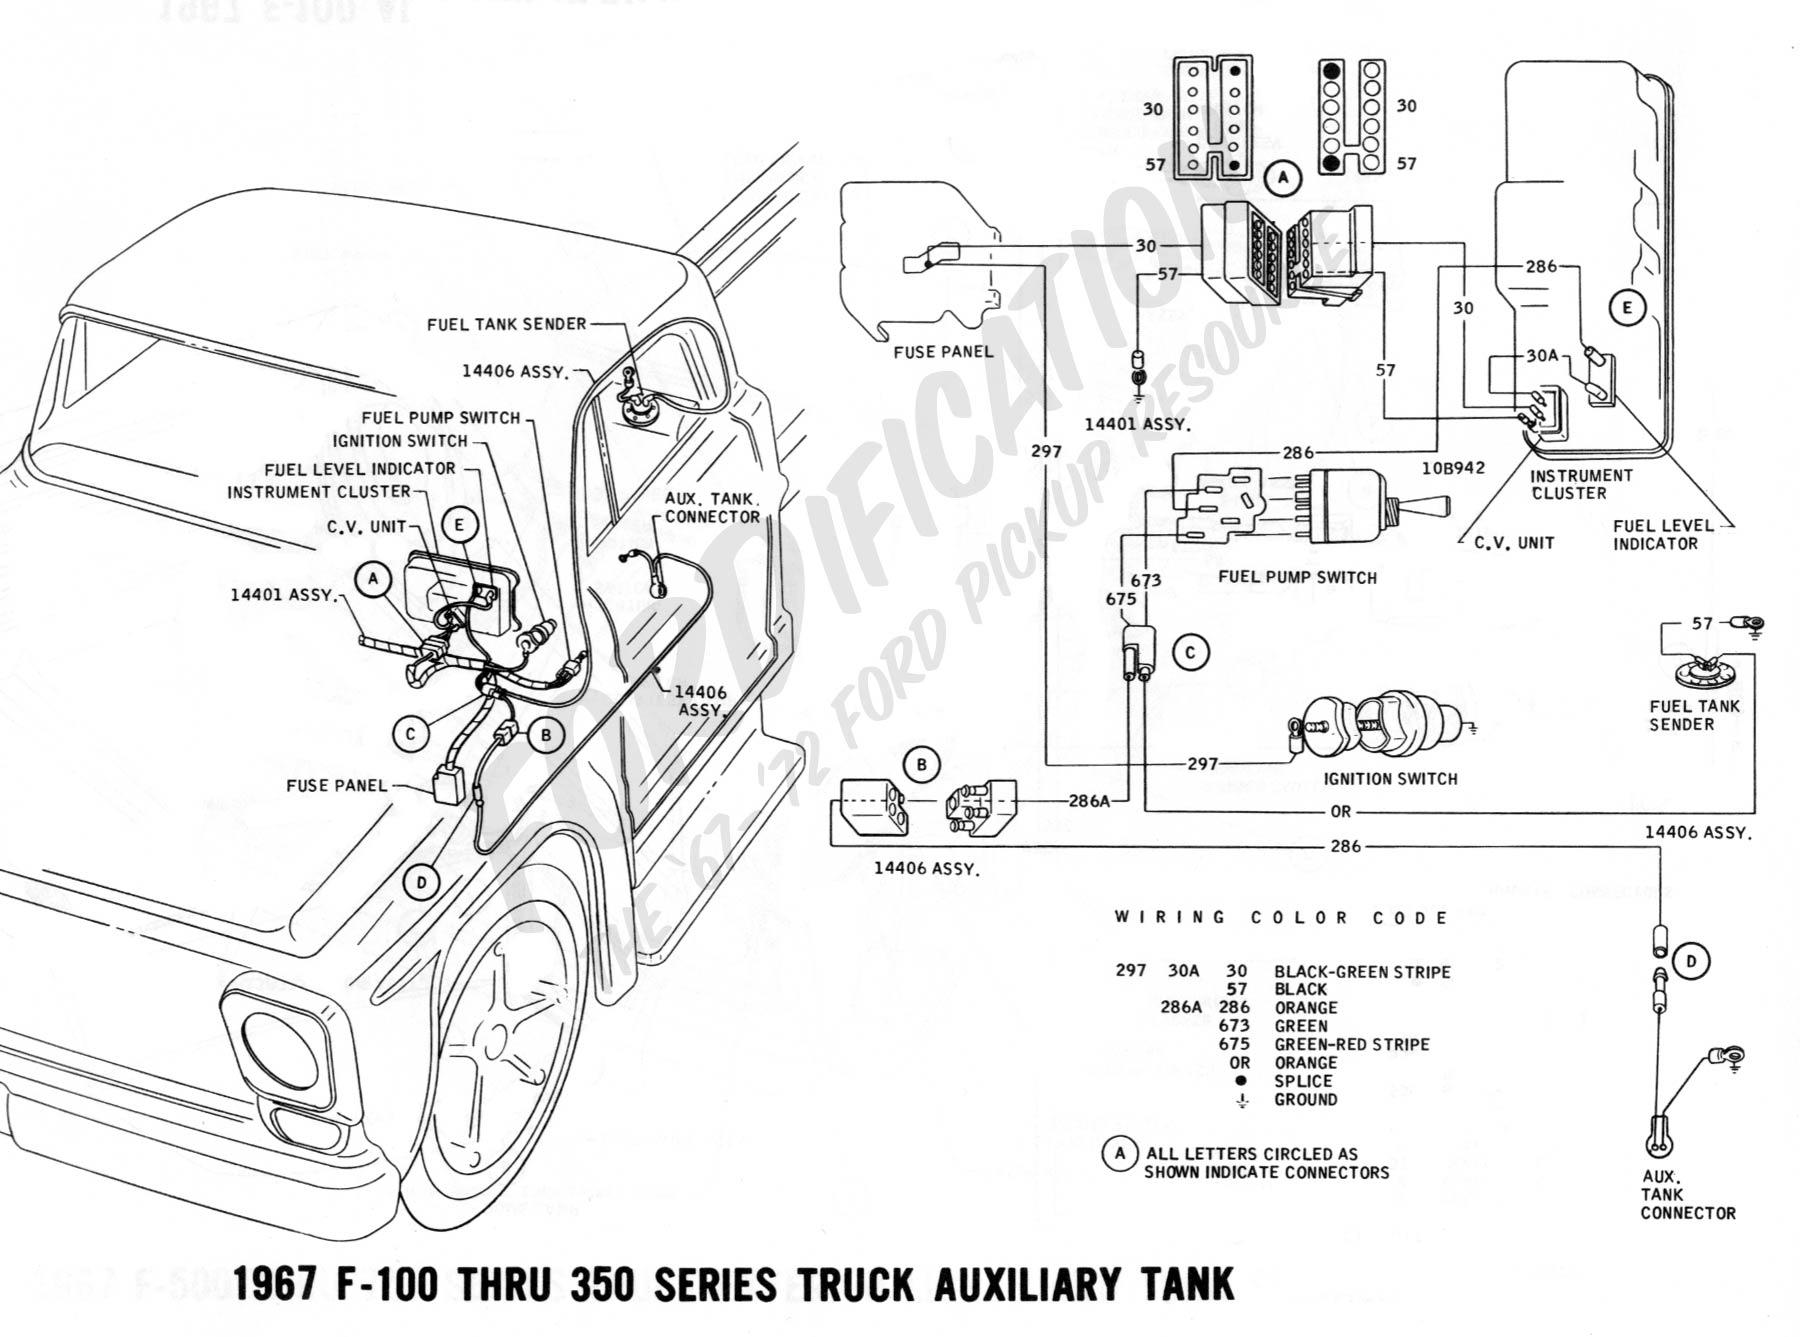 wiring 1967auxtank dual fuel wiring diagram wiring diagram byblank bpc-1 dual fuel control wiring diagram at gsmx.co